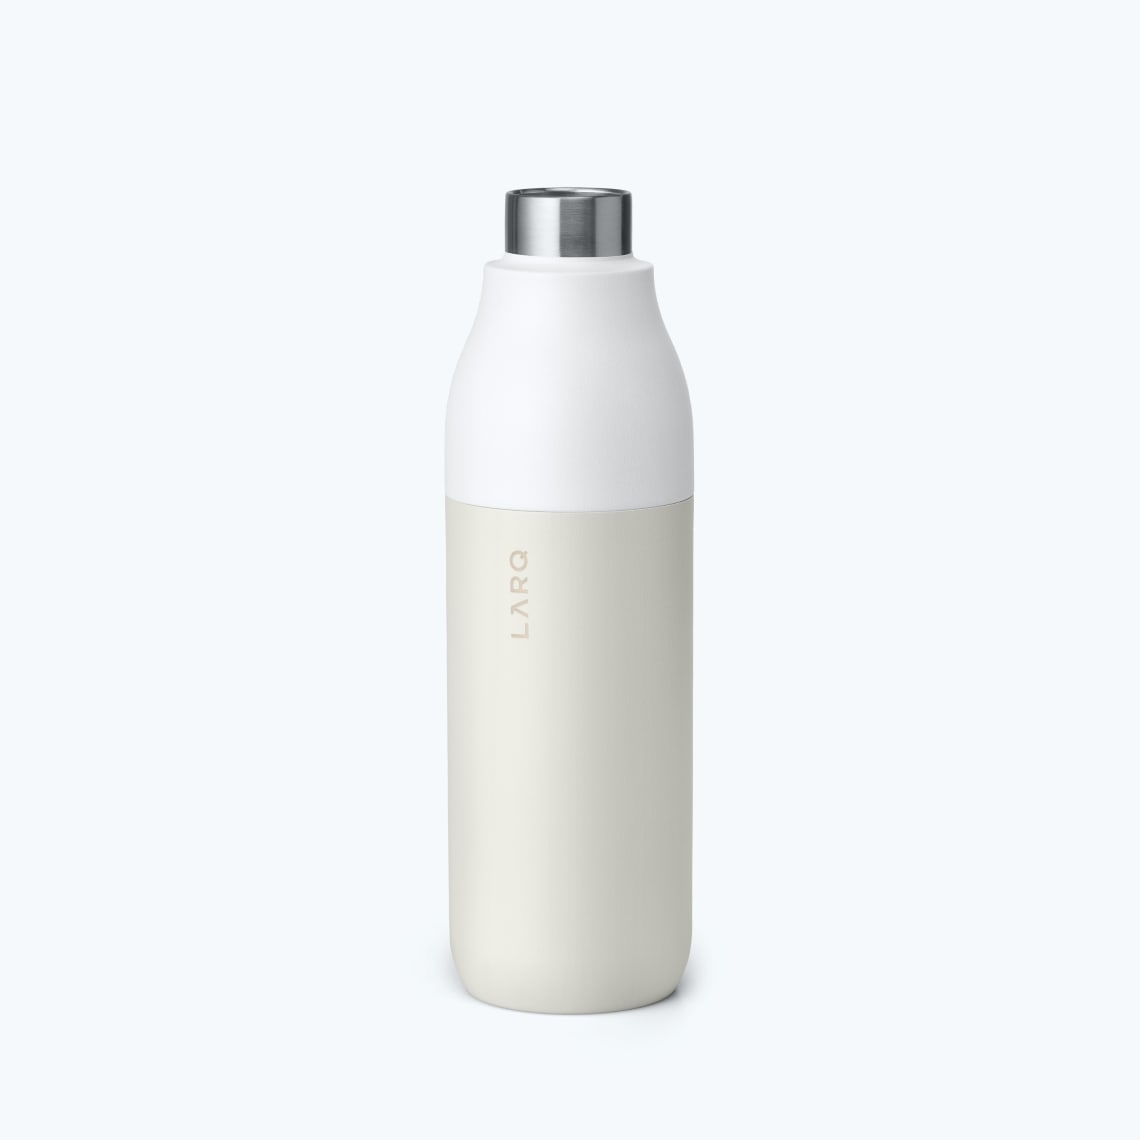 LARQ Bottle Granite White secondary alternative